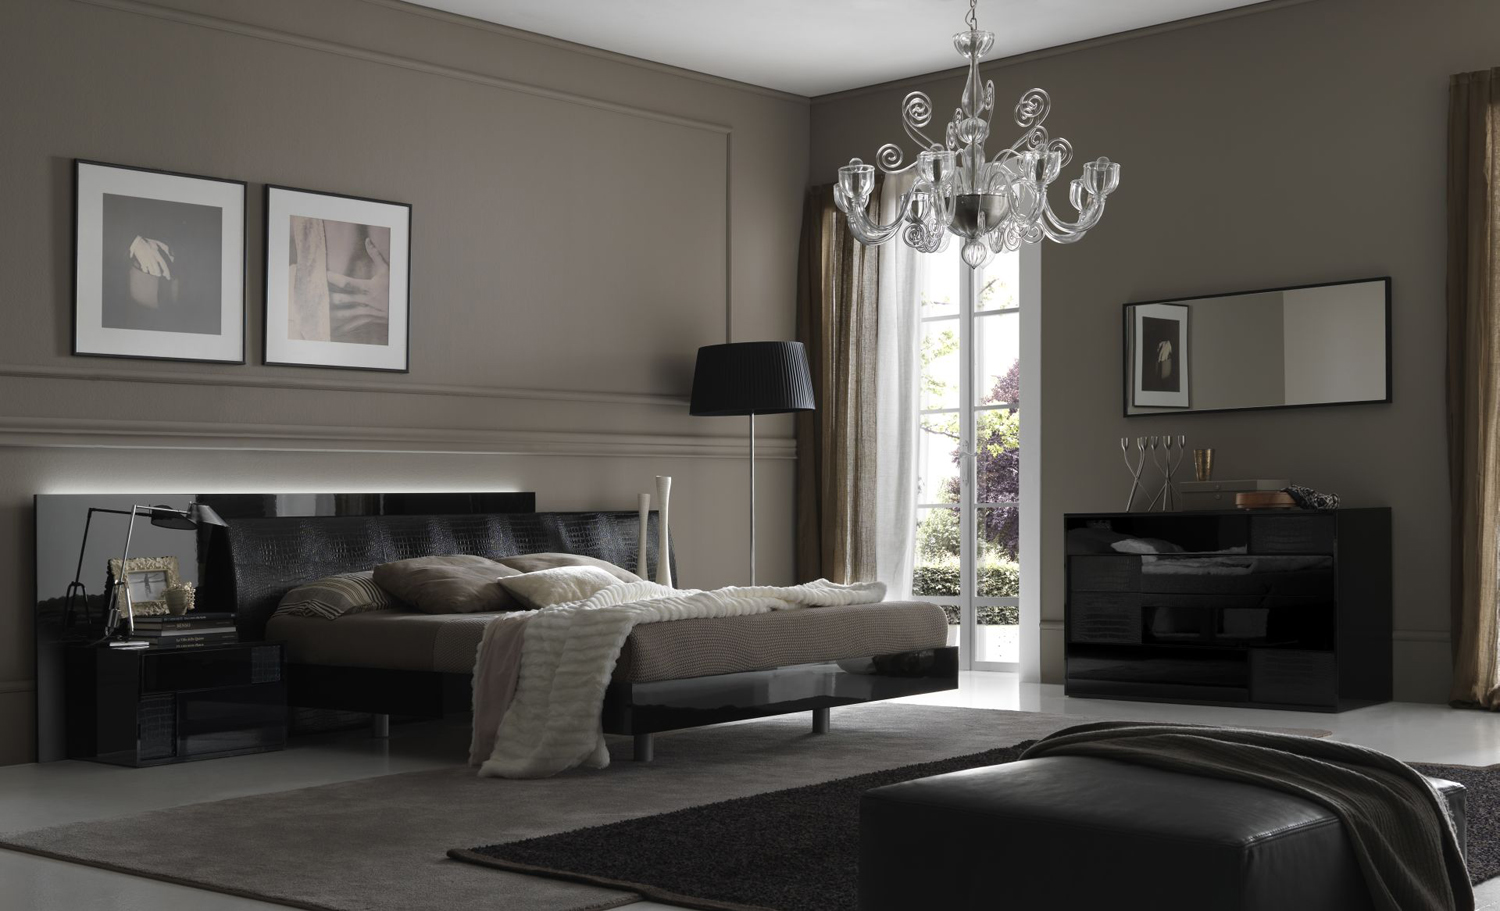 Bed Designs 2017 Welcome 2017 Trends With A Renovated Bedroom